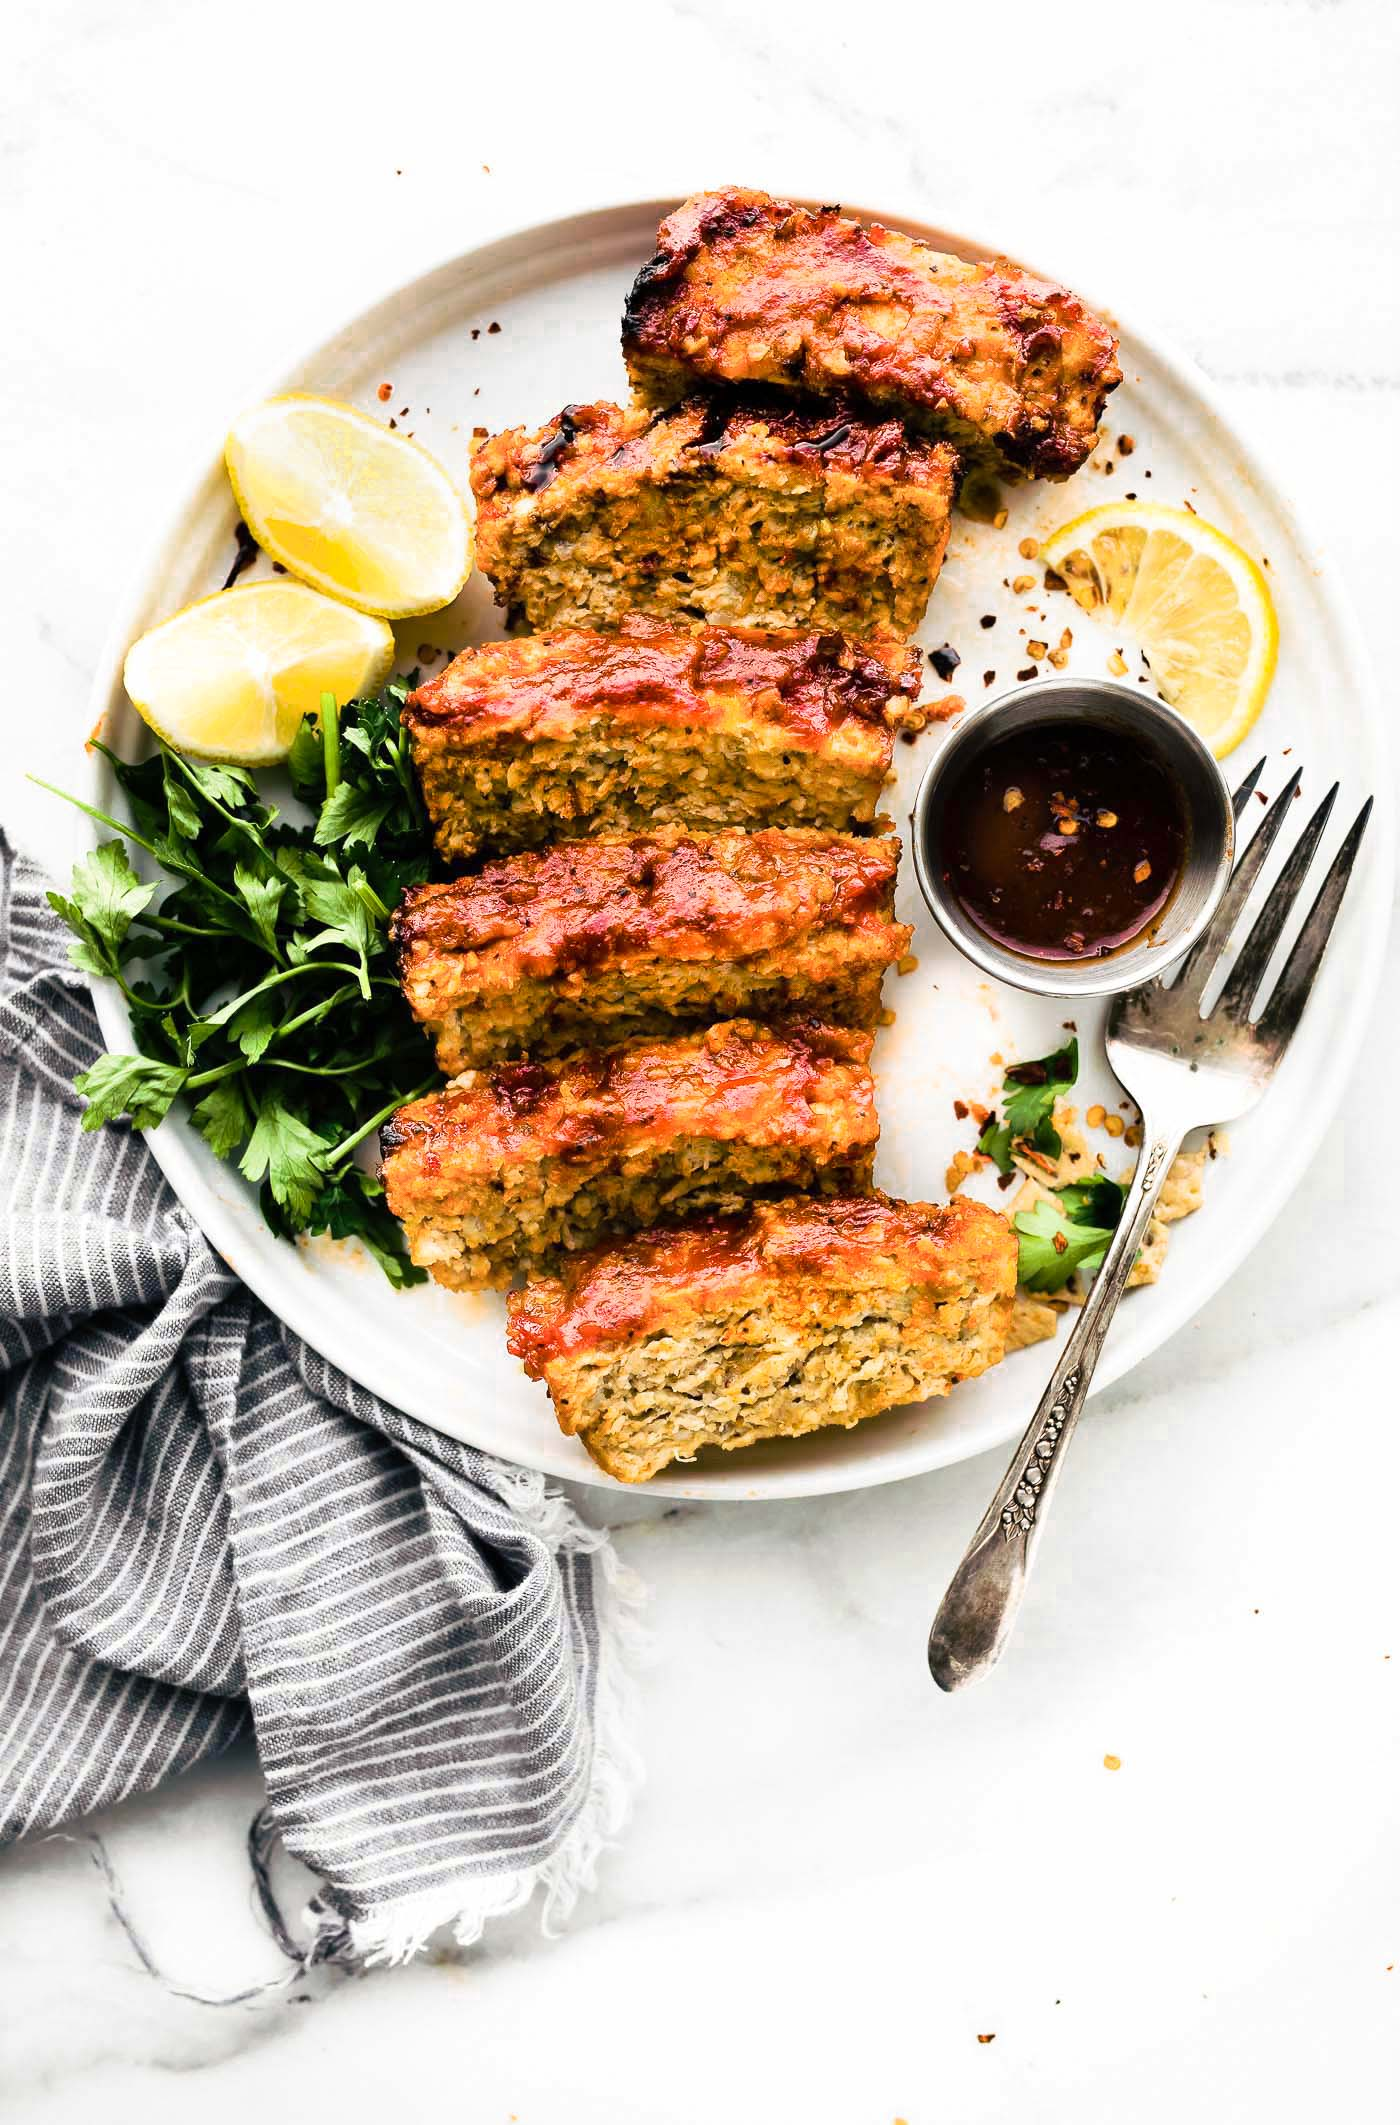 slices of gluten free barbecue meatloaf without bread crumbs